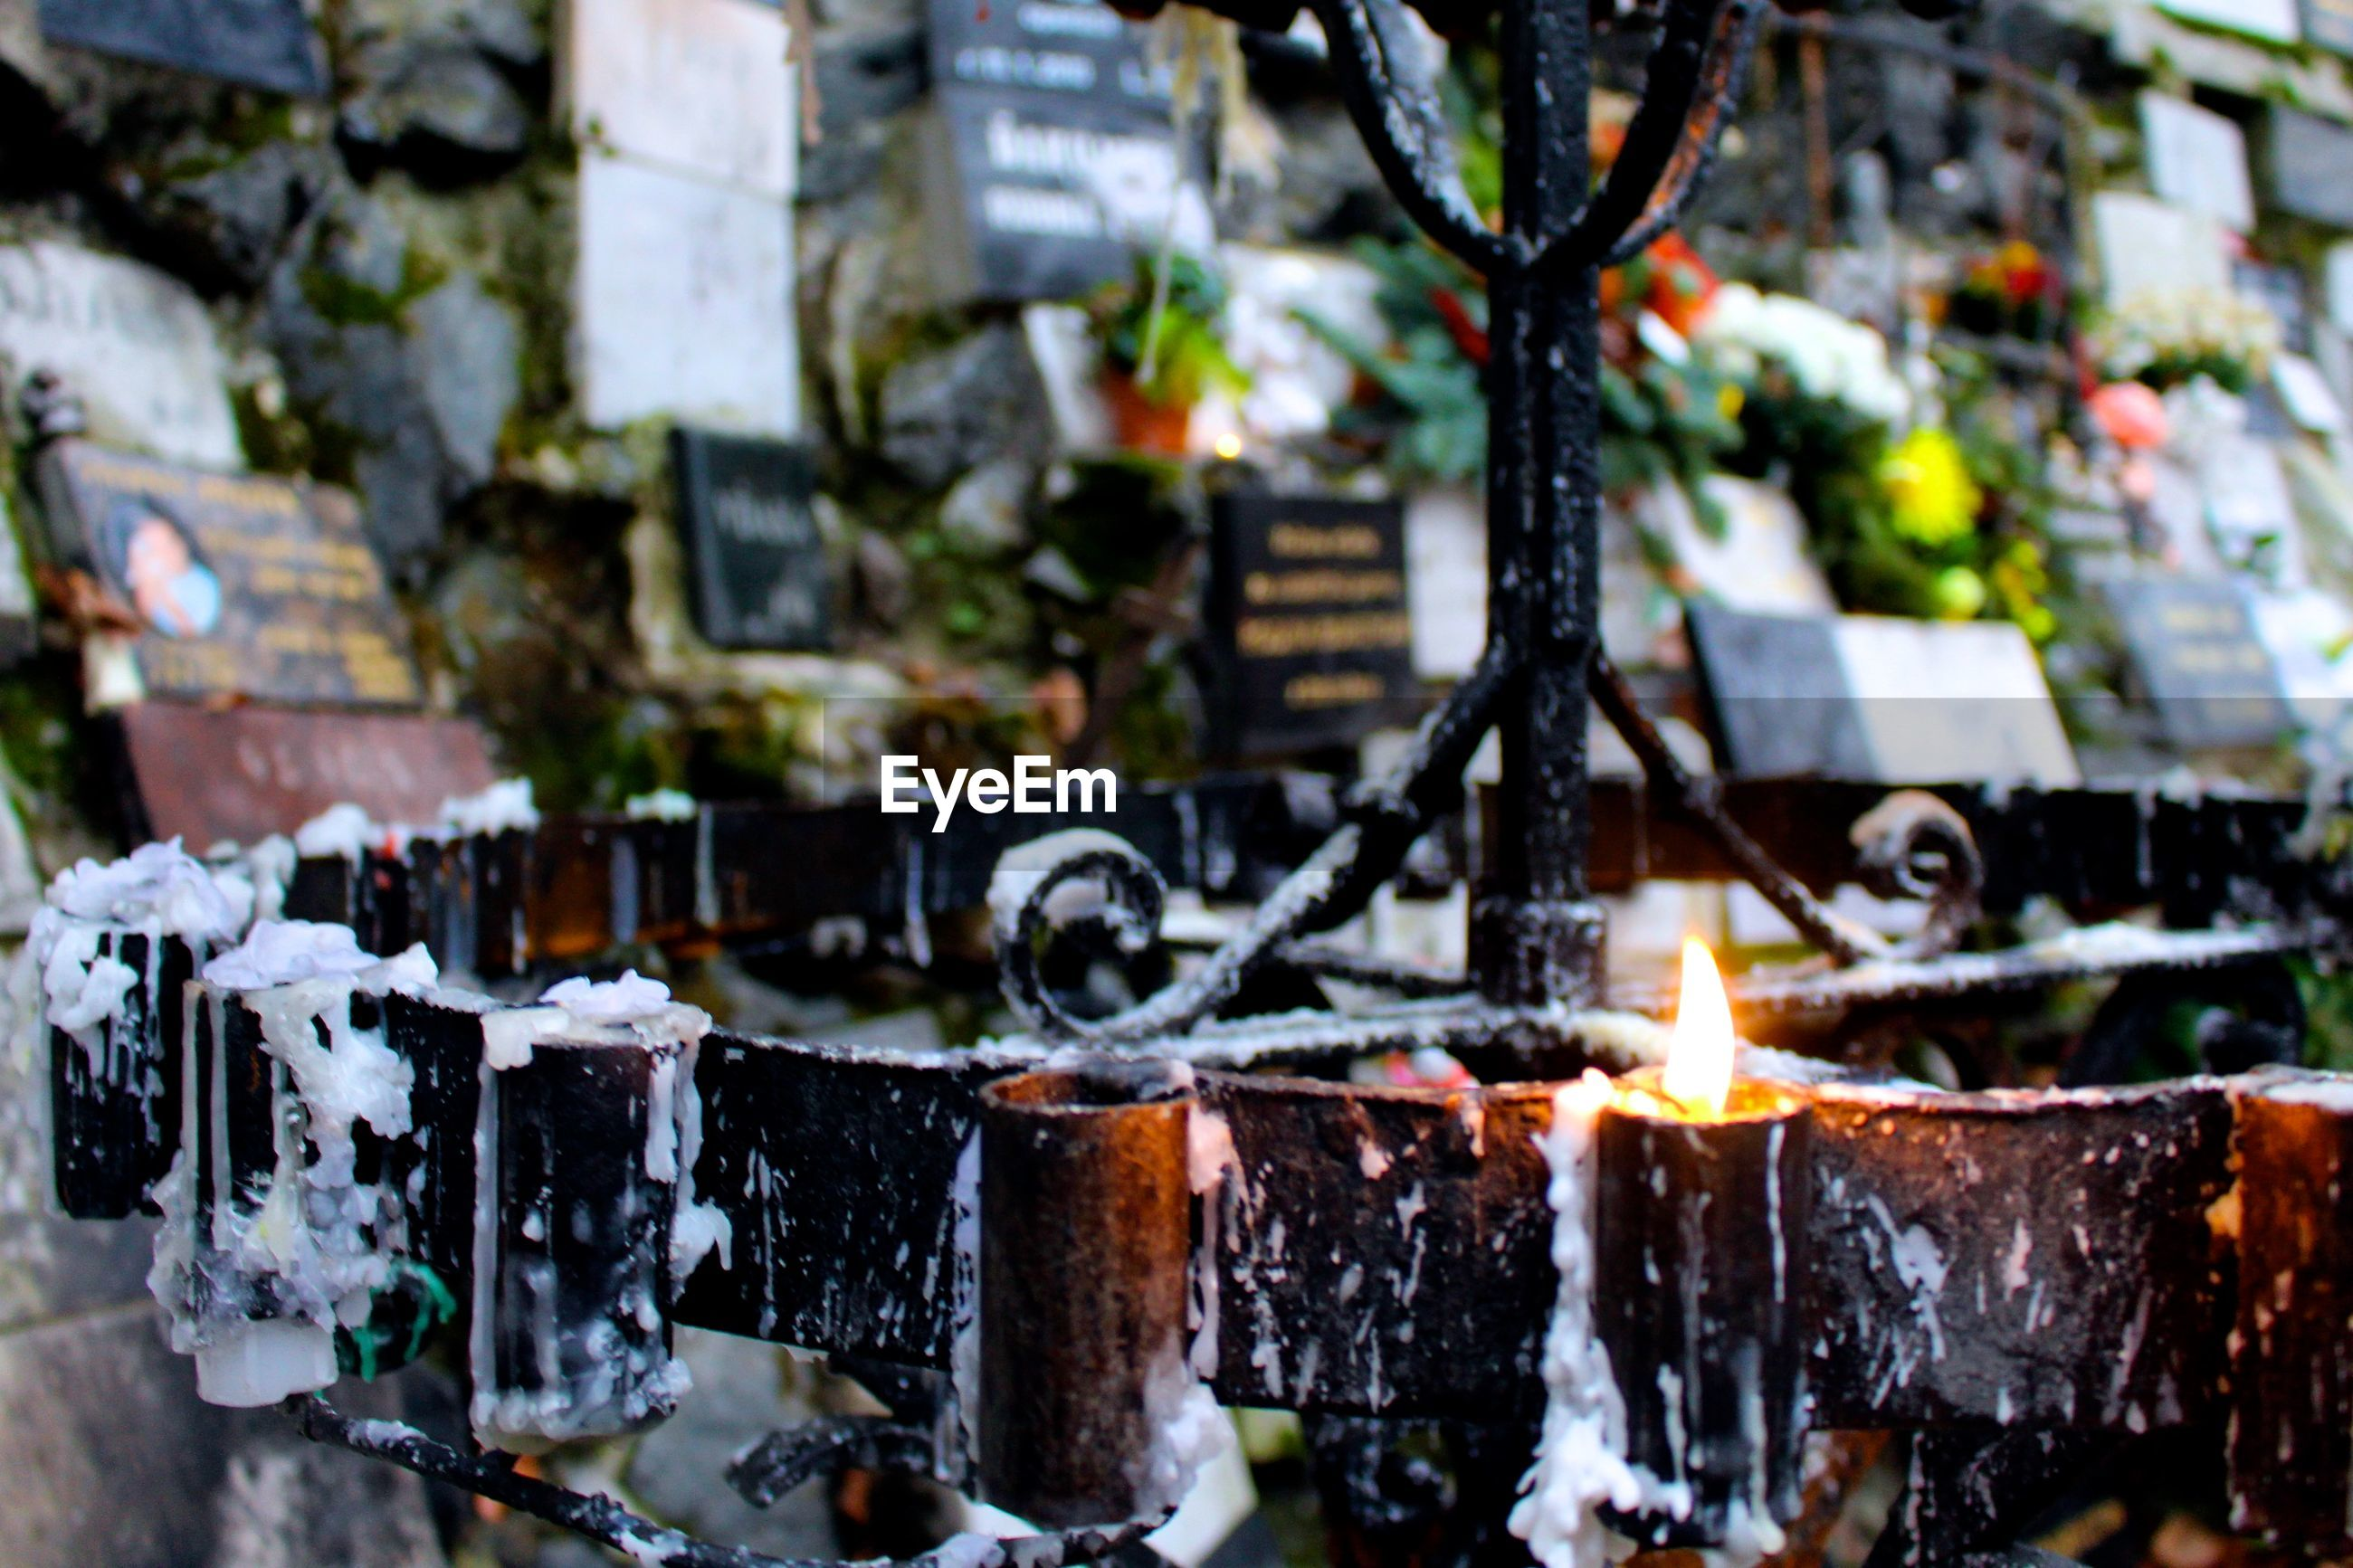 Close-up of lit candle on holder in cemetery